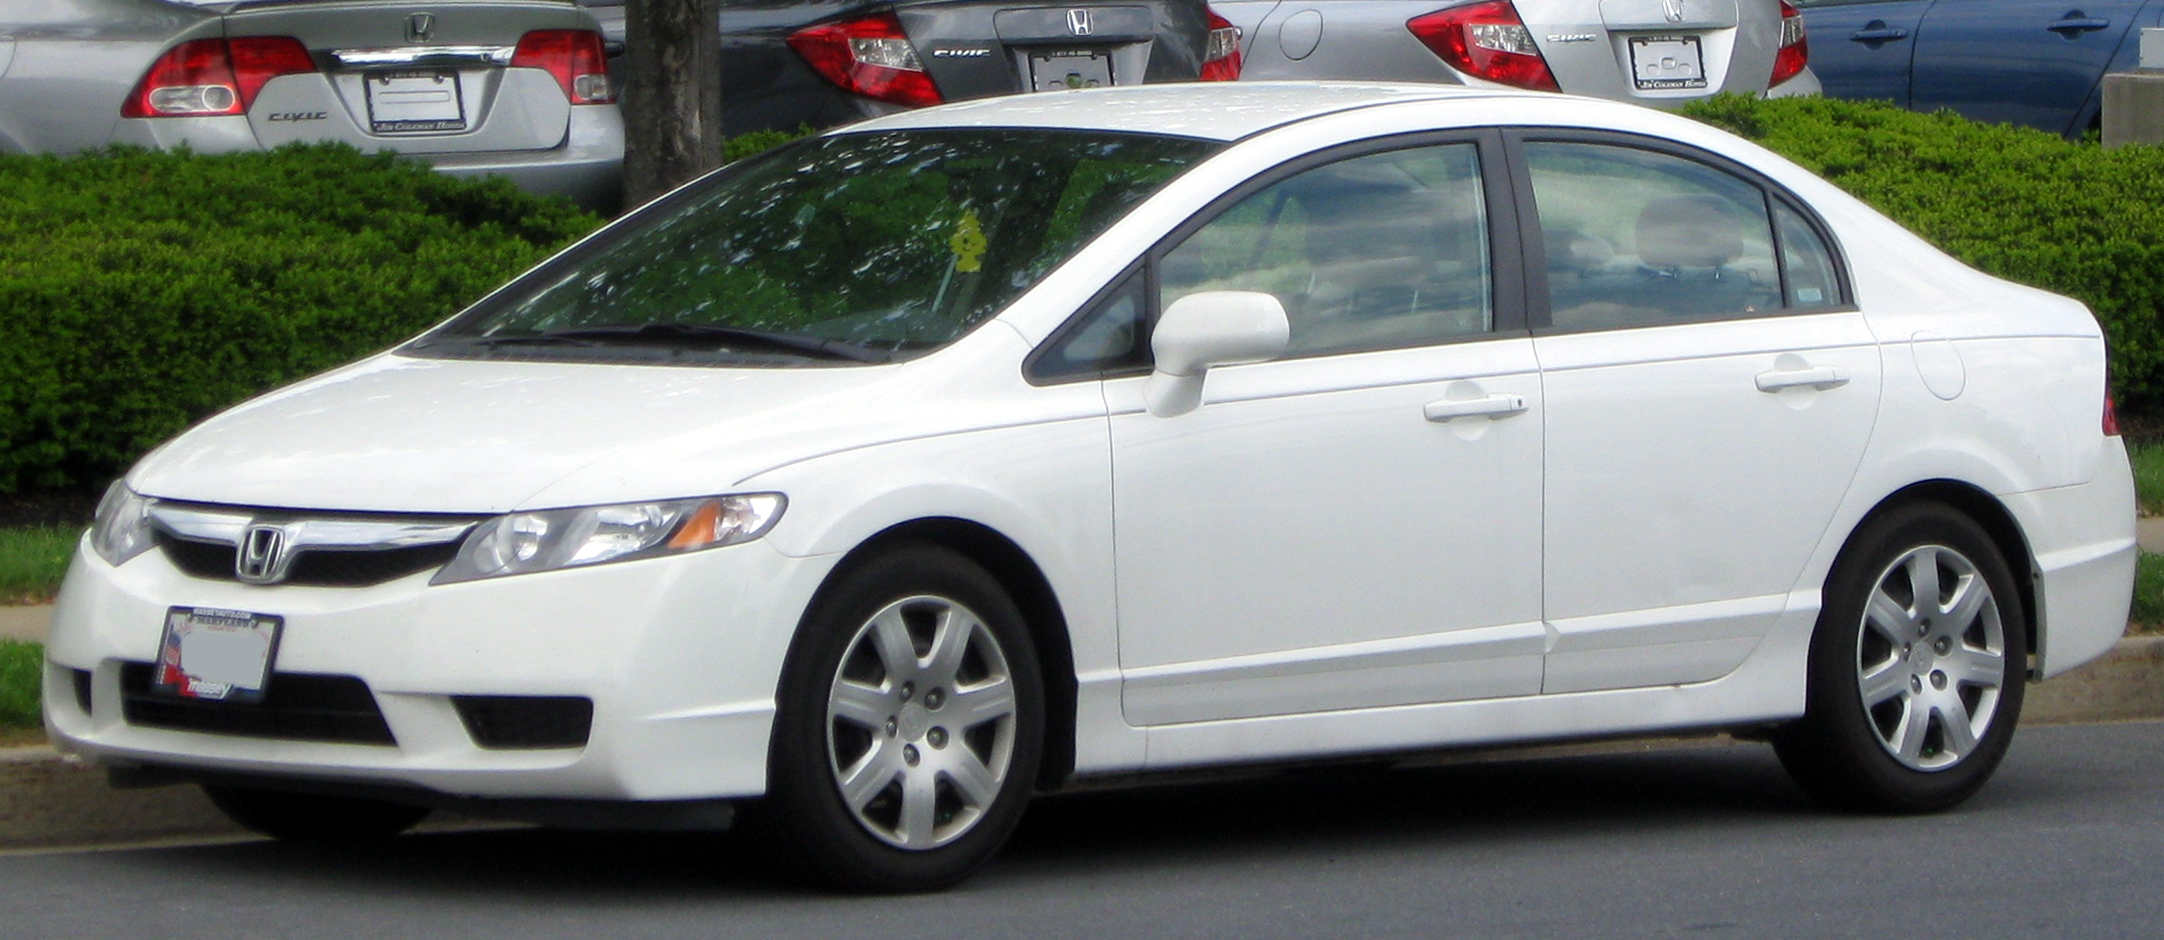 Honda Civic #15